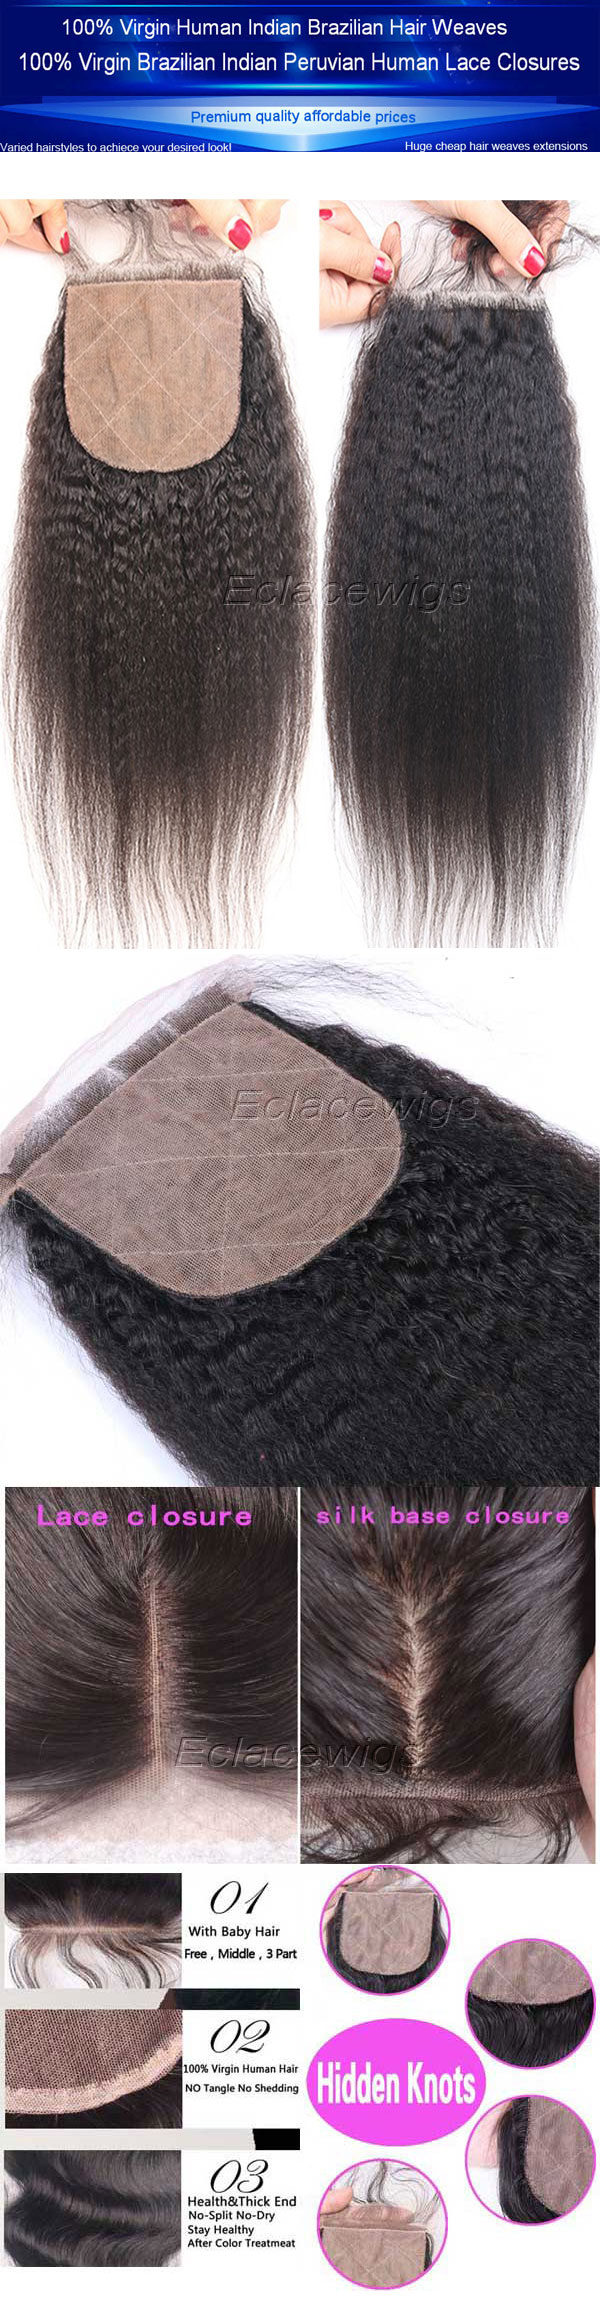 silk base virgin closures